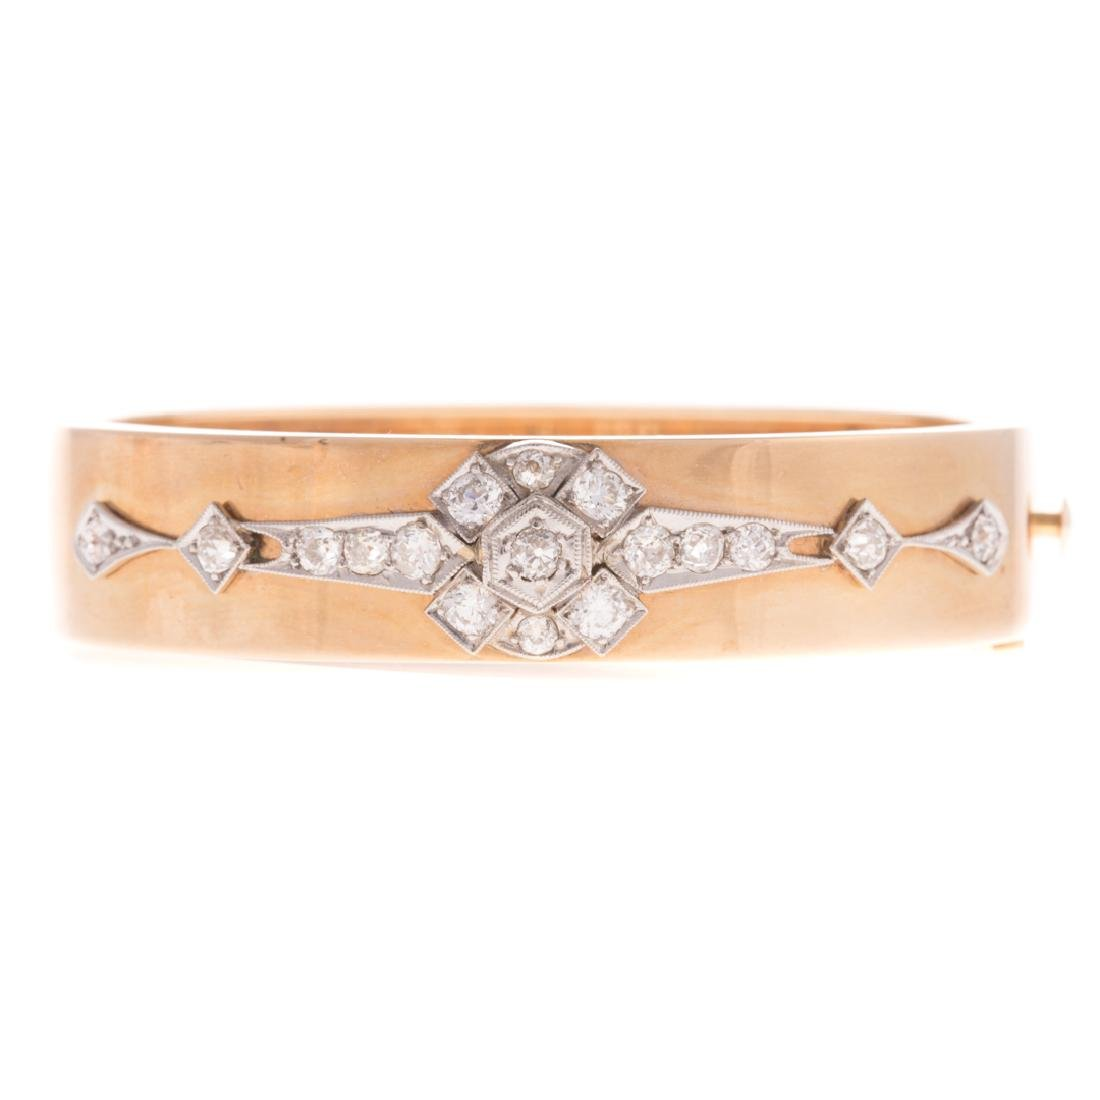 A Lady's 14K Diamond Bangle Bracelet